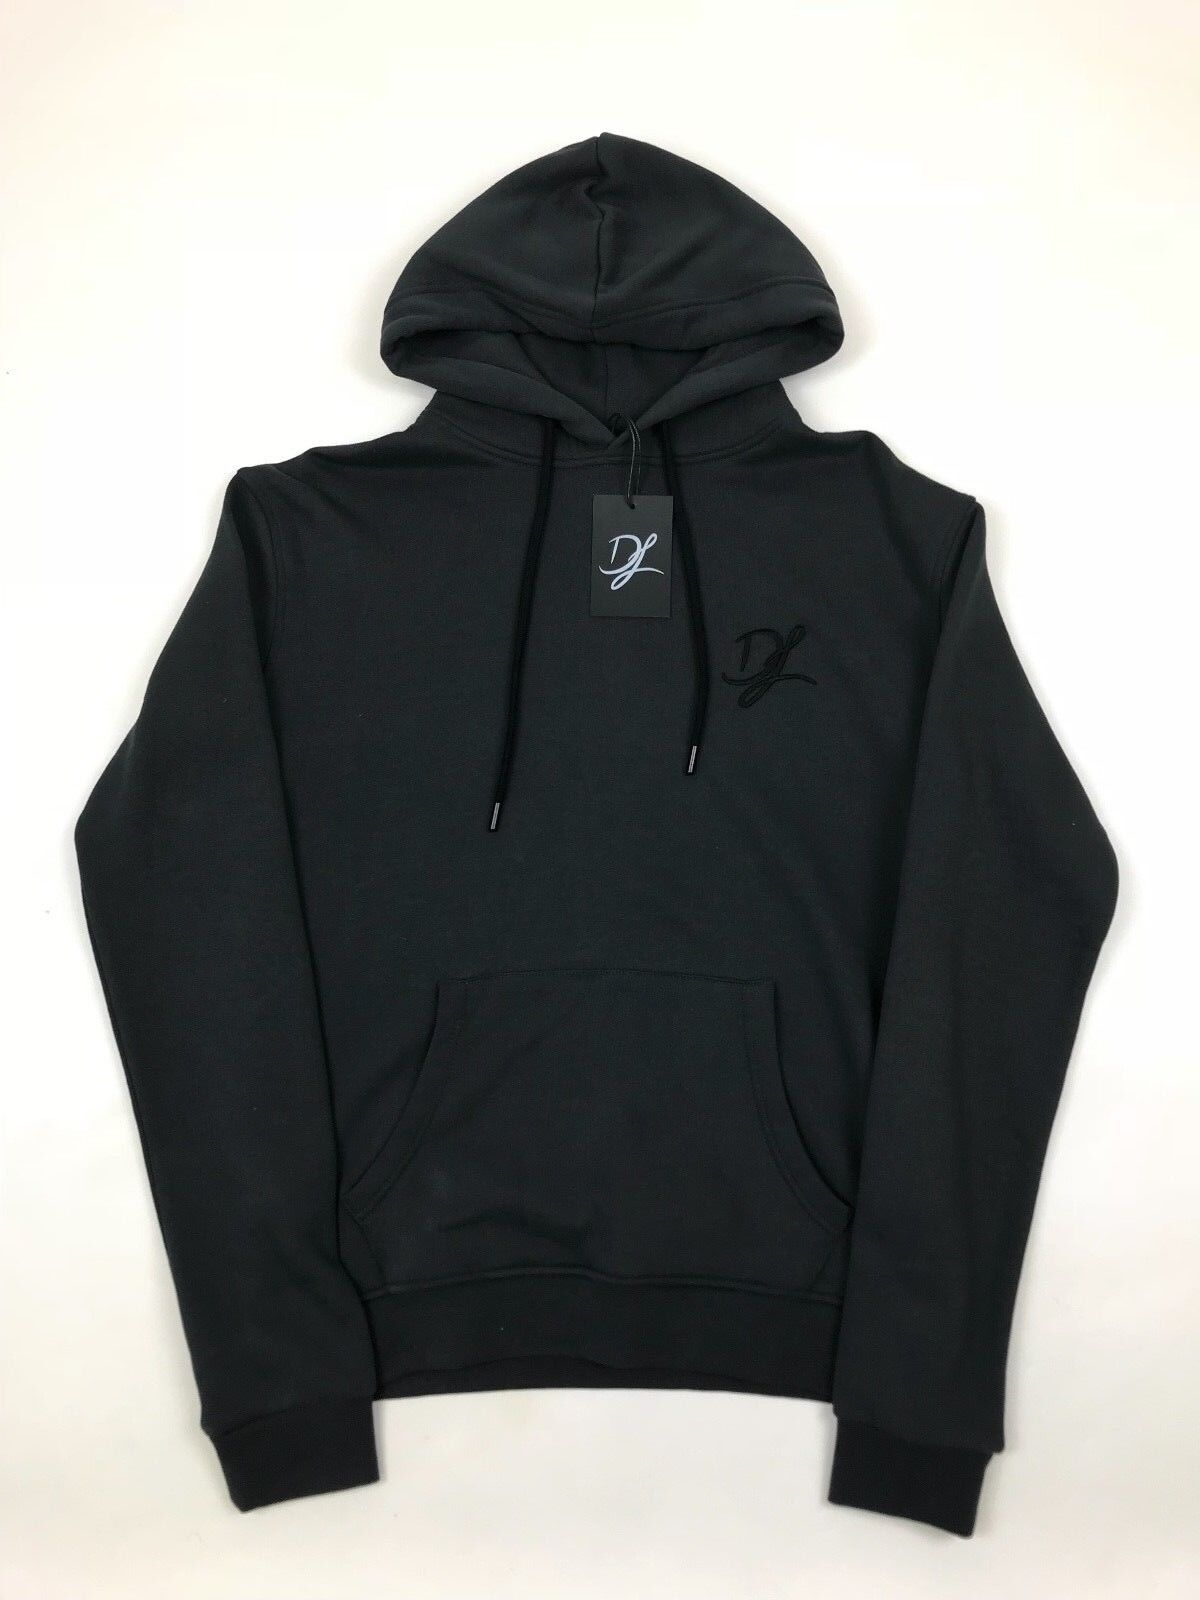 Dead legacy - Charcoal Hoodie - S - NEW WITH TAGS RRP